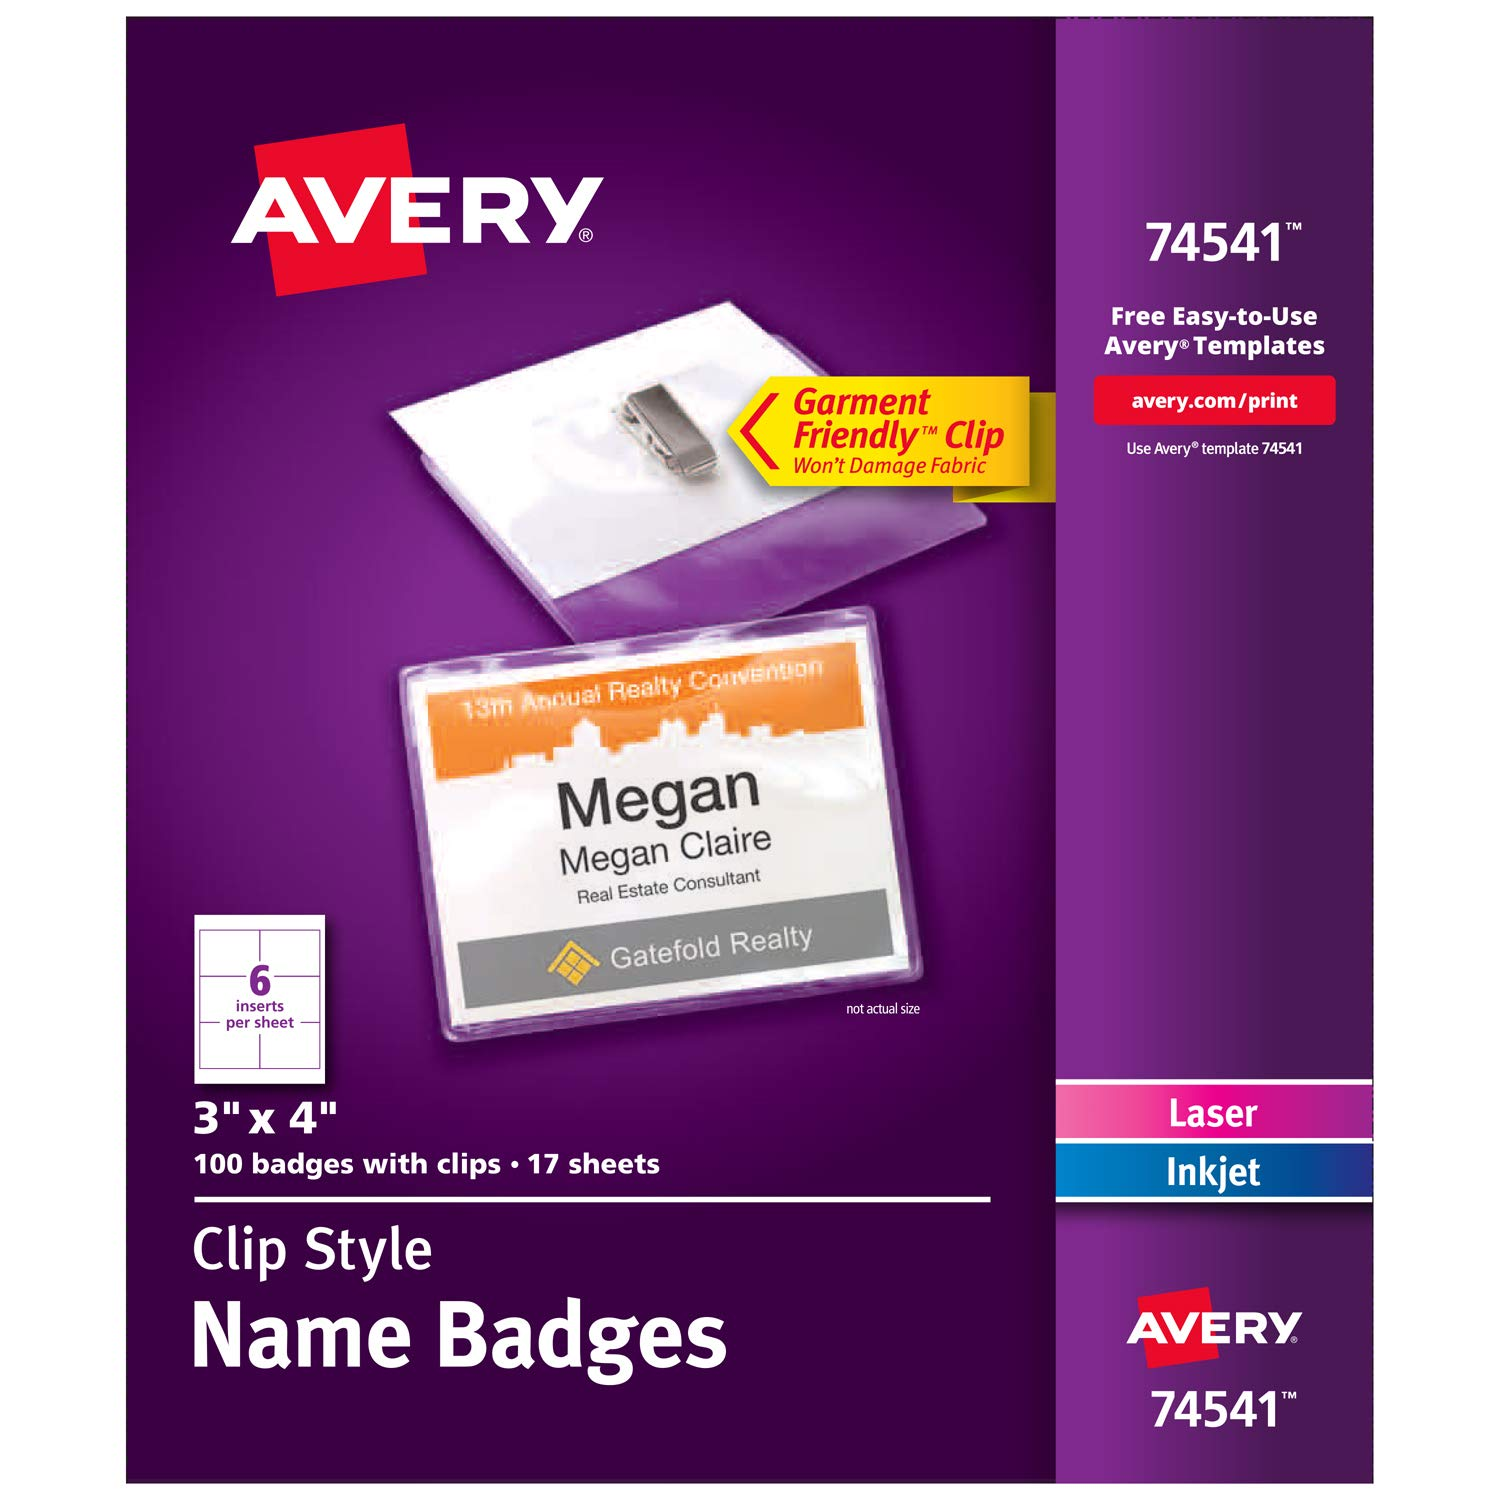 Avery Clip Name Badges, Print or Write, 3'' x 4'', 100 Inserts & Badge Holders with Clips (74541)